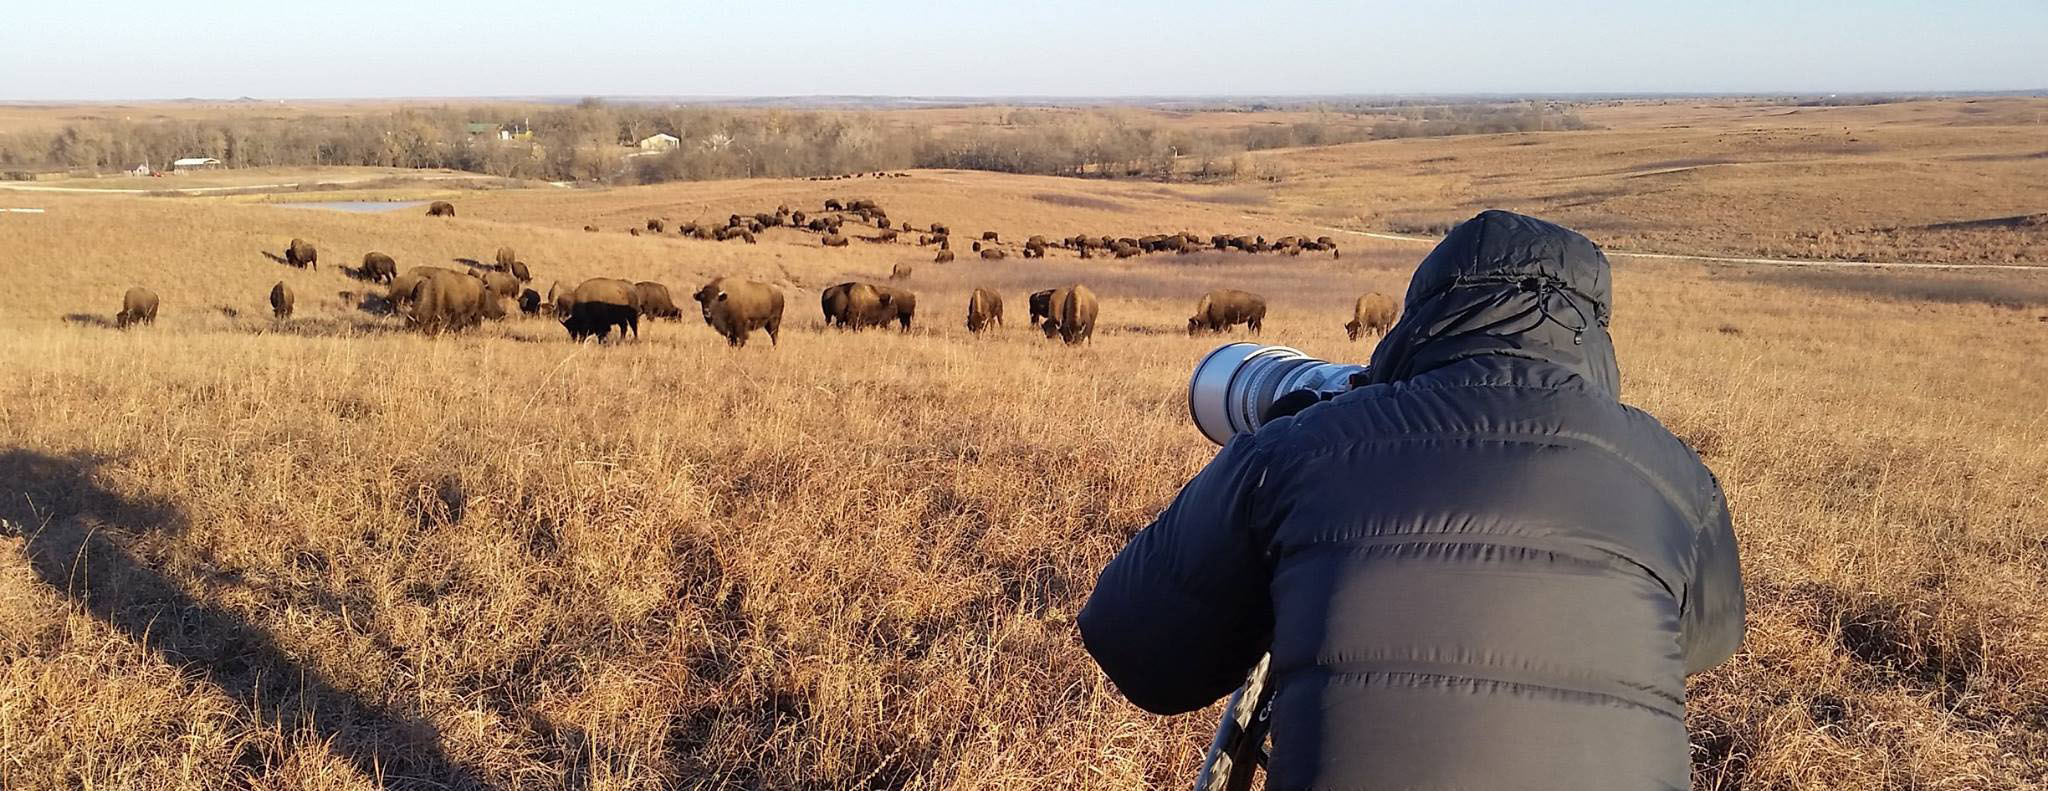 Photographing the bison at sunrise. Photo by Jeff Heidel.